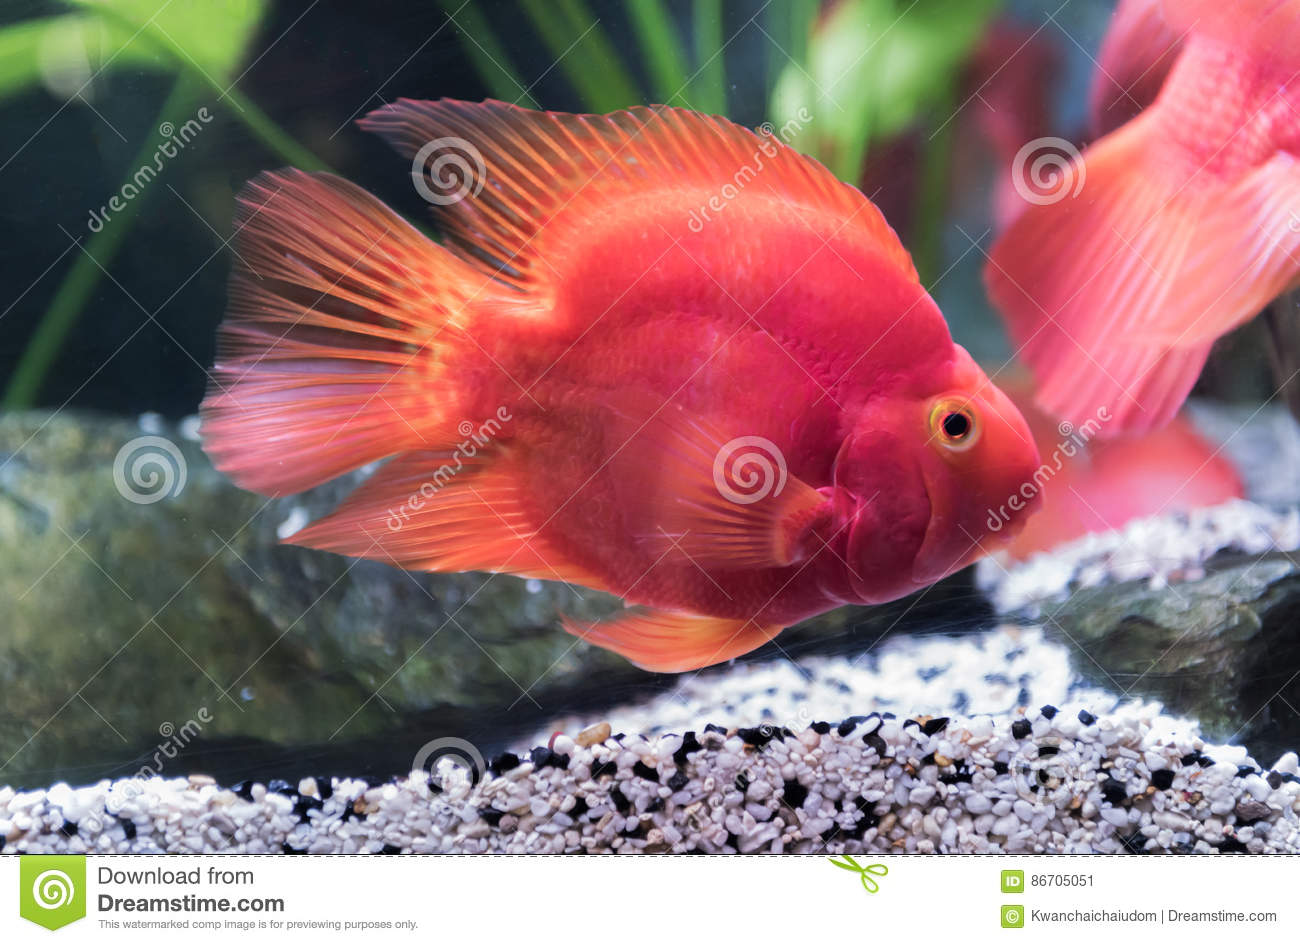 Red Blood Parrot Fish Stock Photos - 115 Images